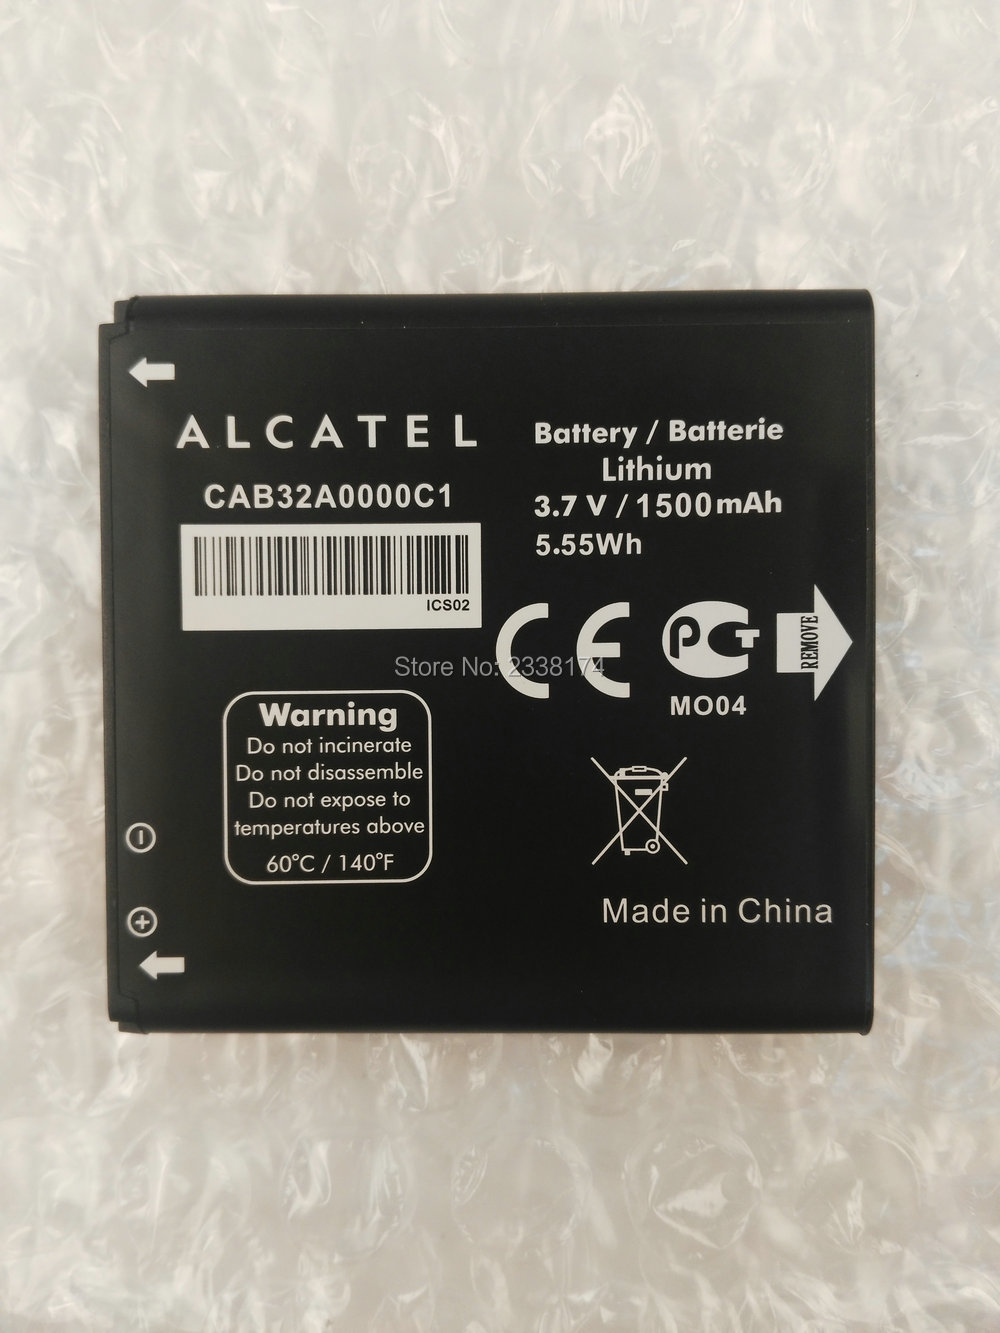 1pcs 100% High Quality CAB32A0000C1 1500mAh Battery For Alcatel One Touch 6010 OT6010 OT-6010 Phone Freeshipping + Tracking Code